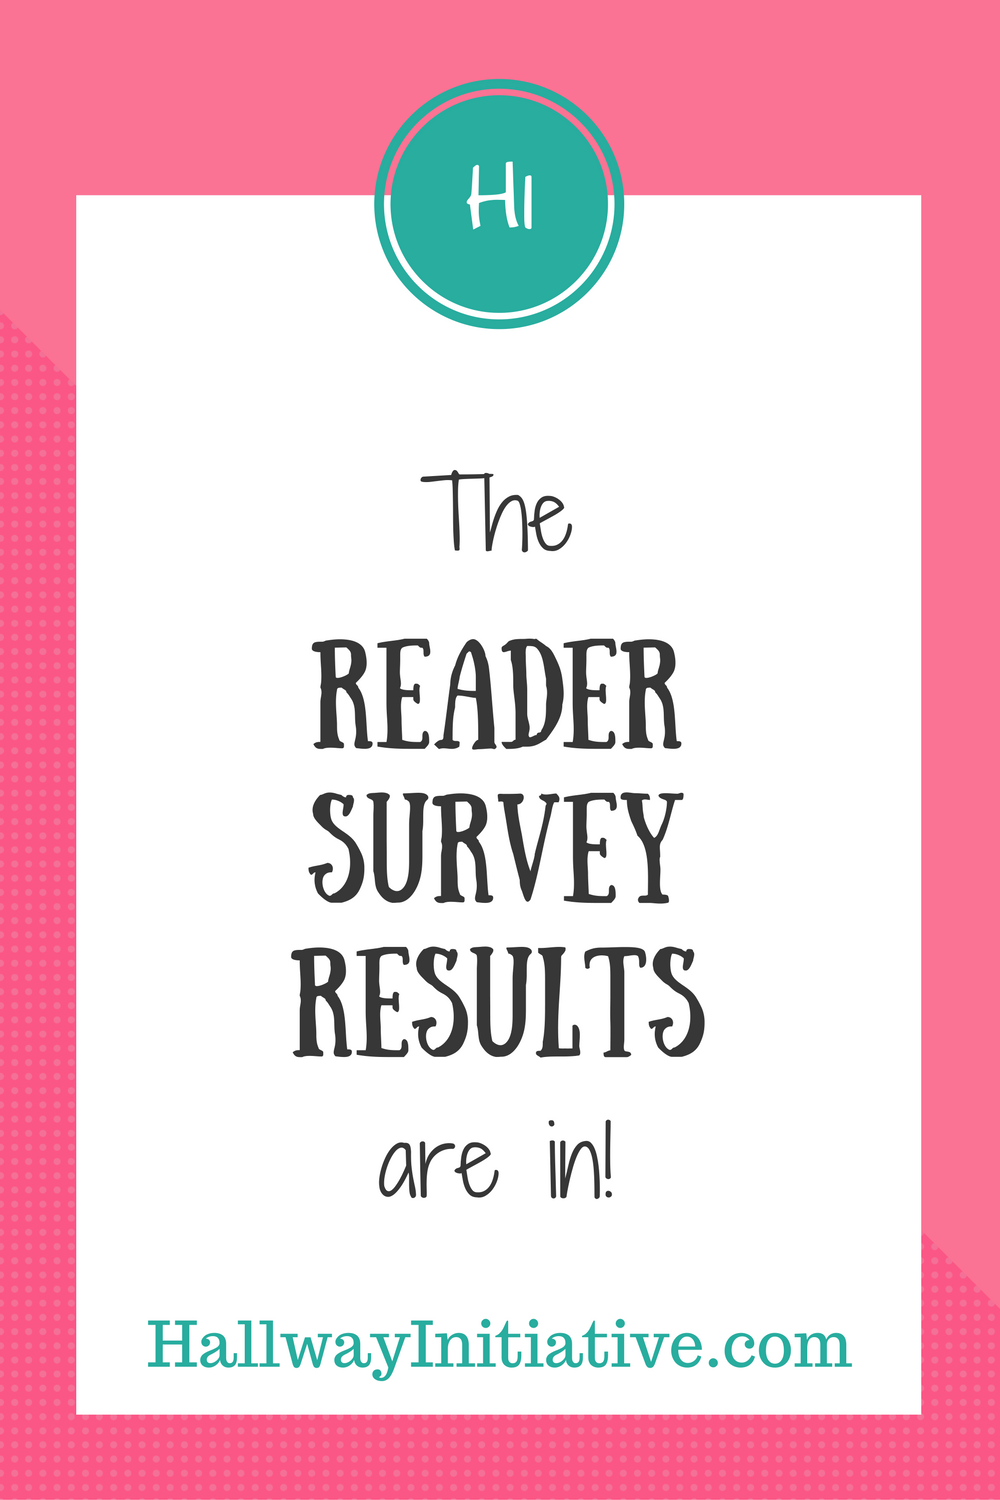 The reader survey results are in